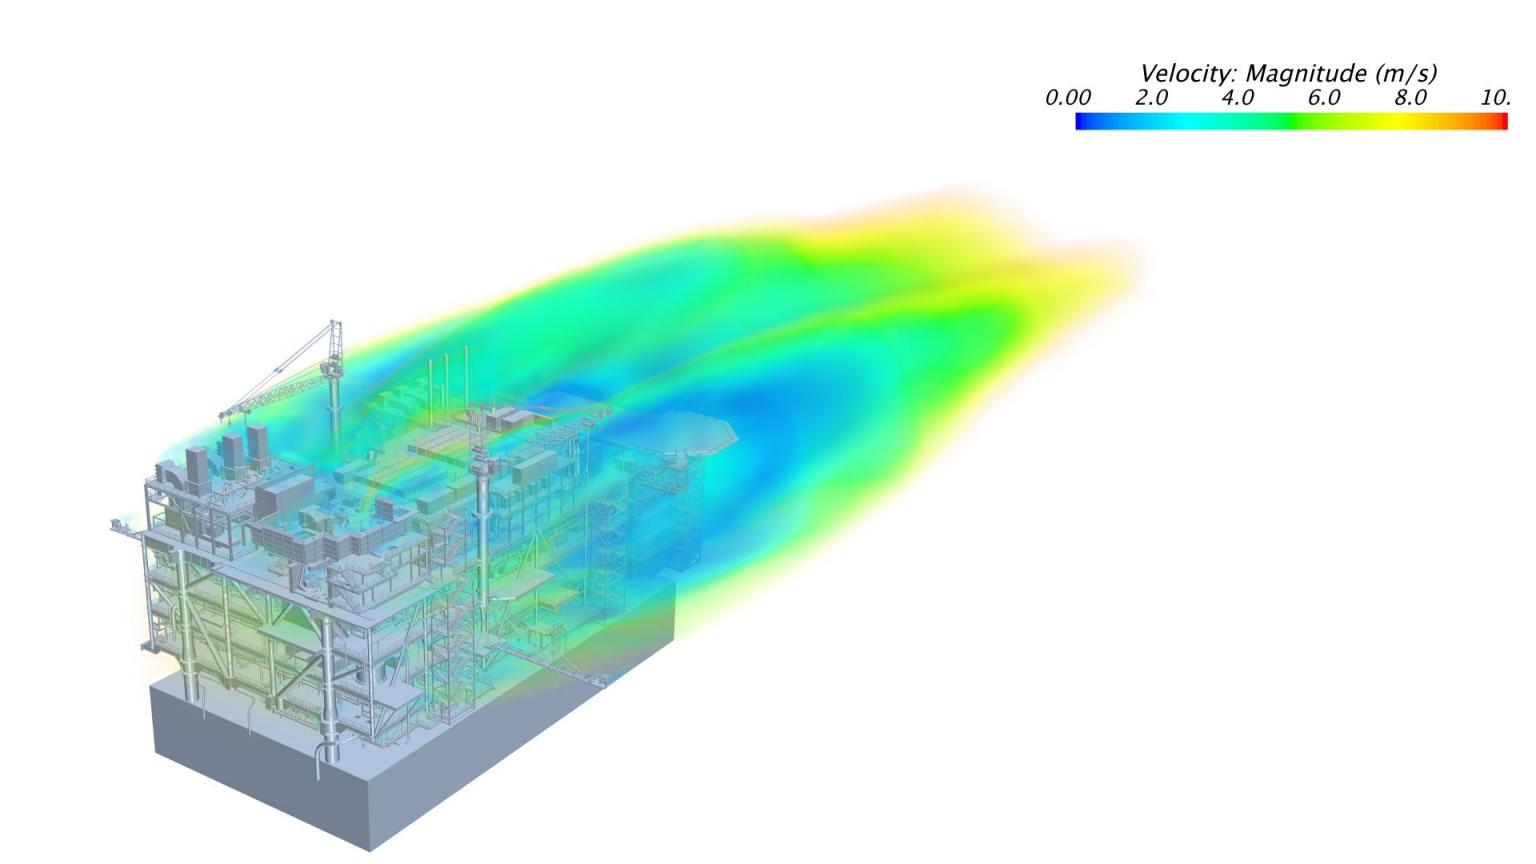 Flow simulation results using full-featured CFD model